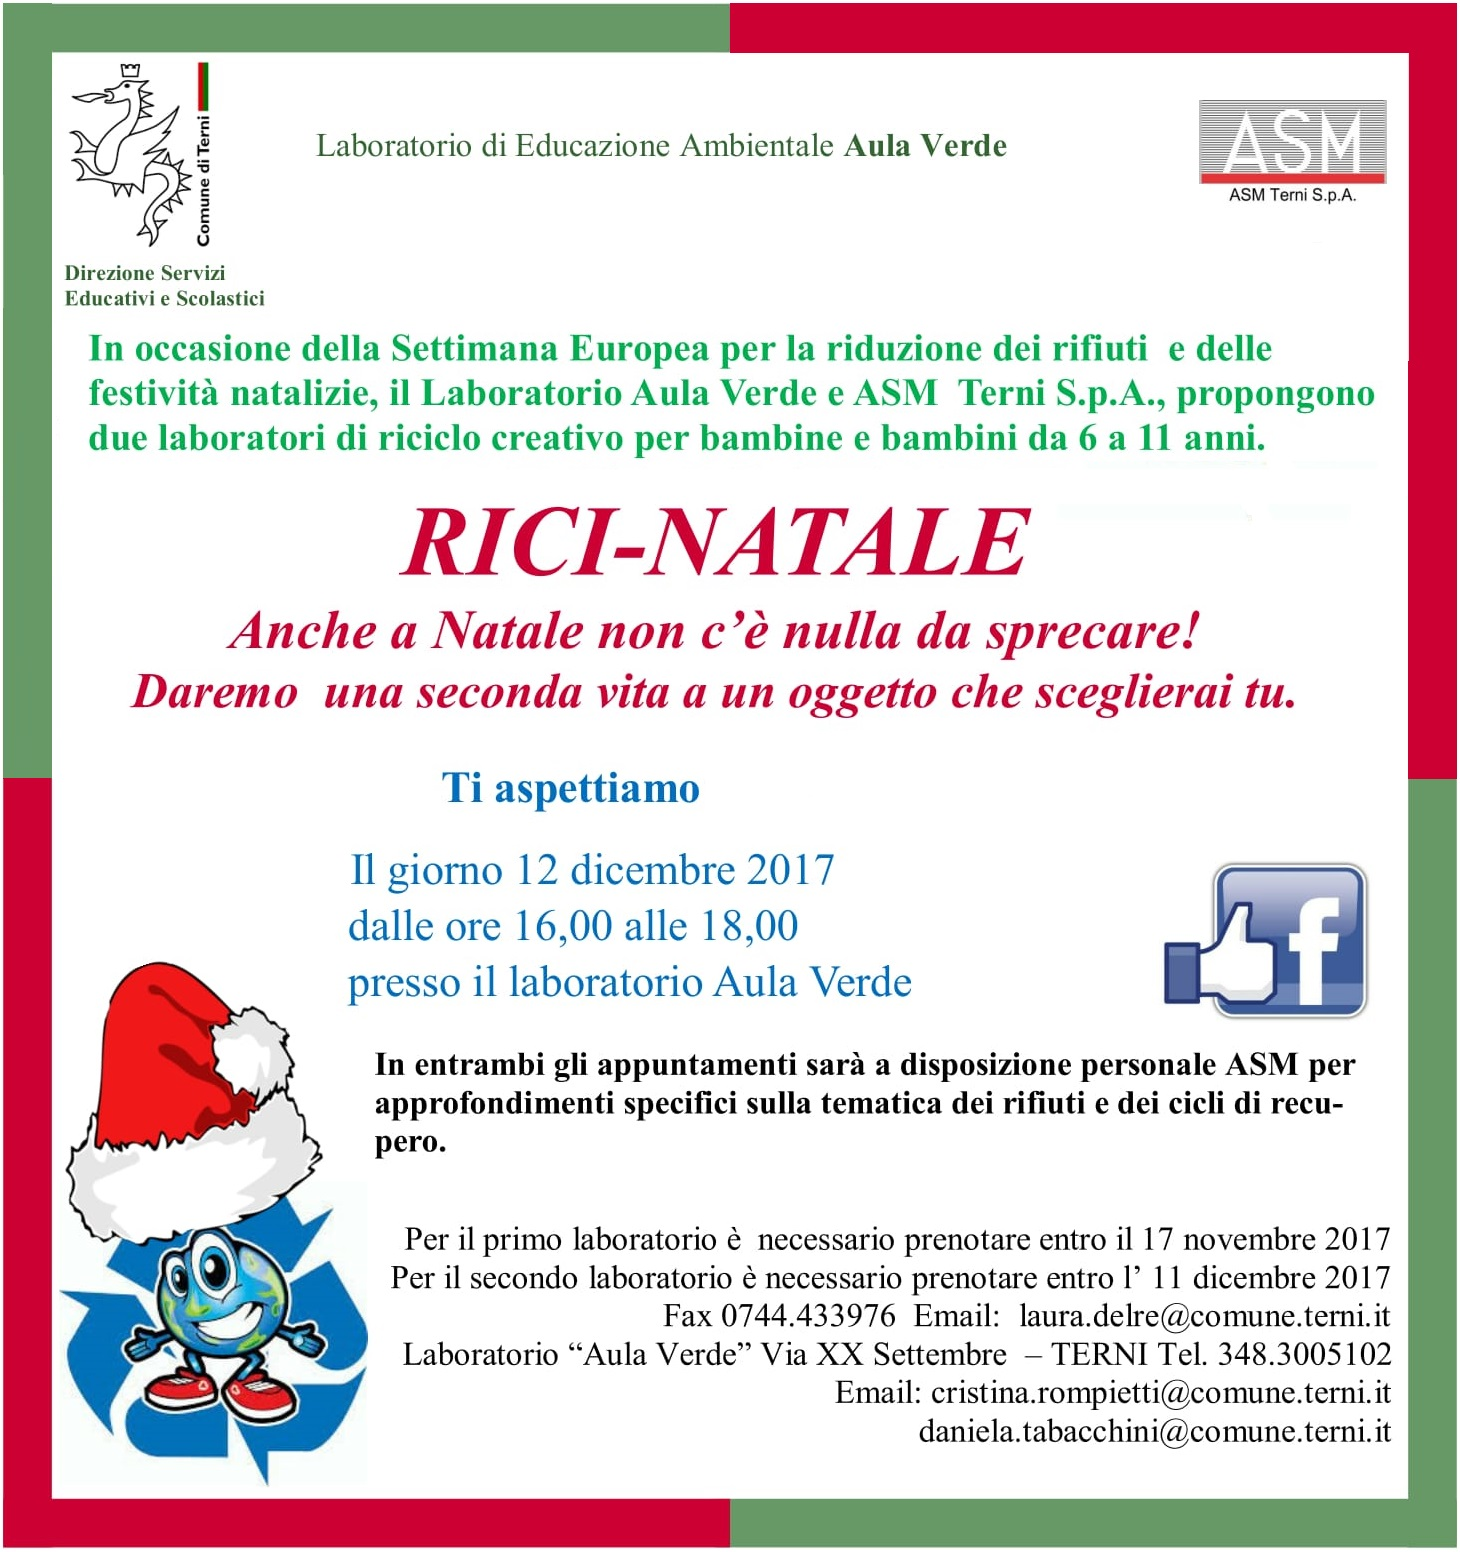 rici-natale